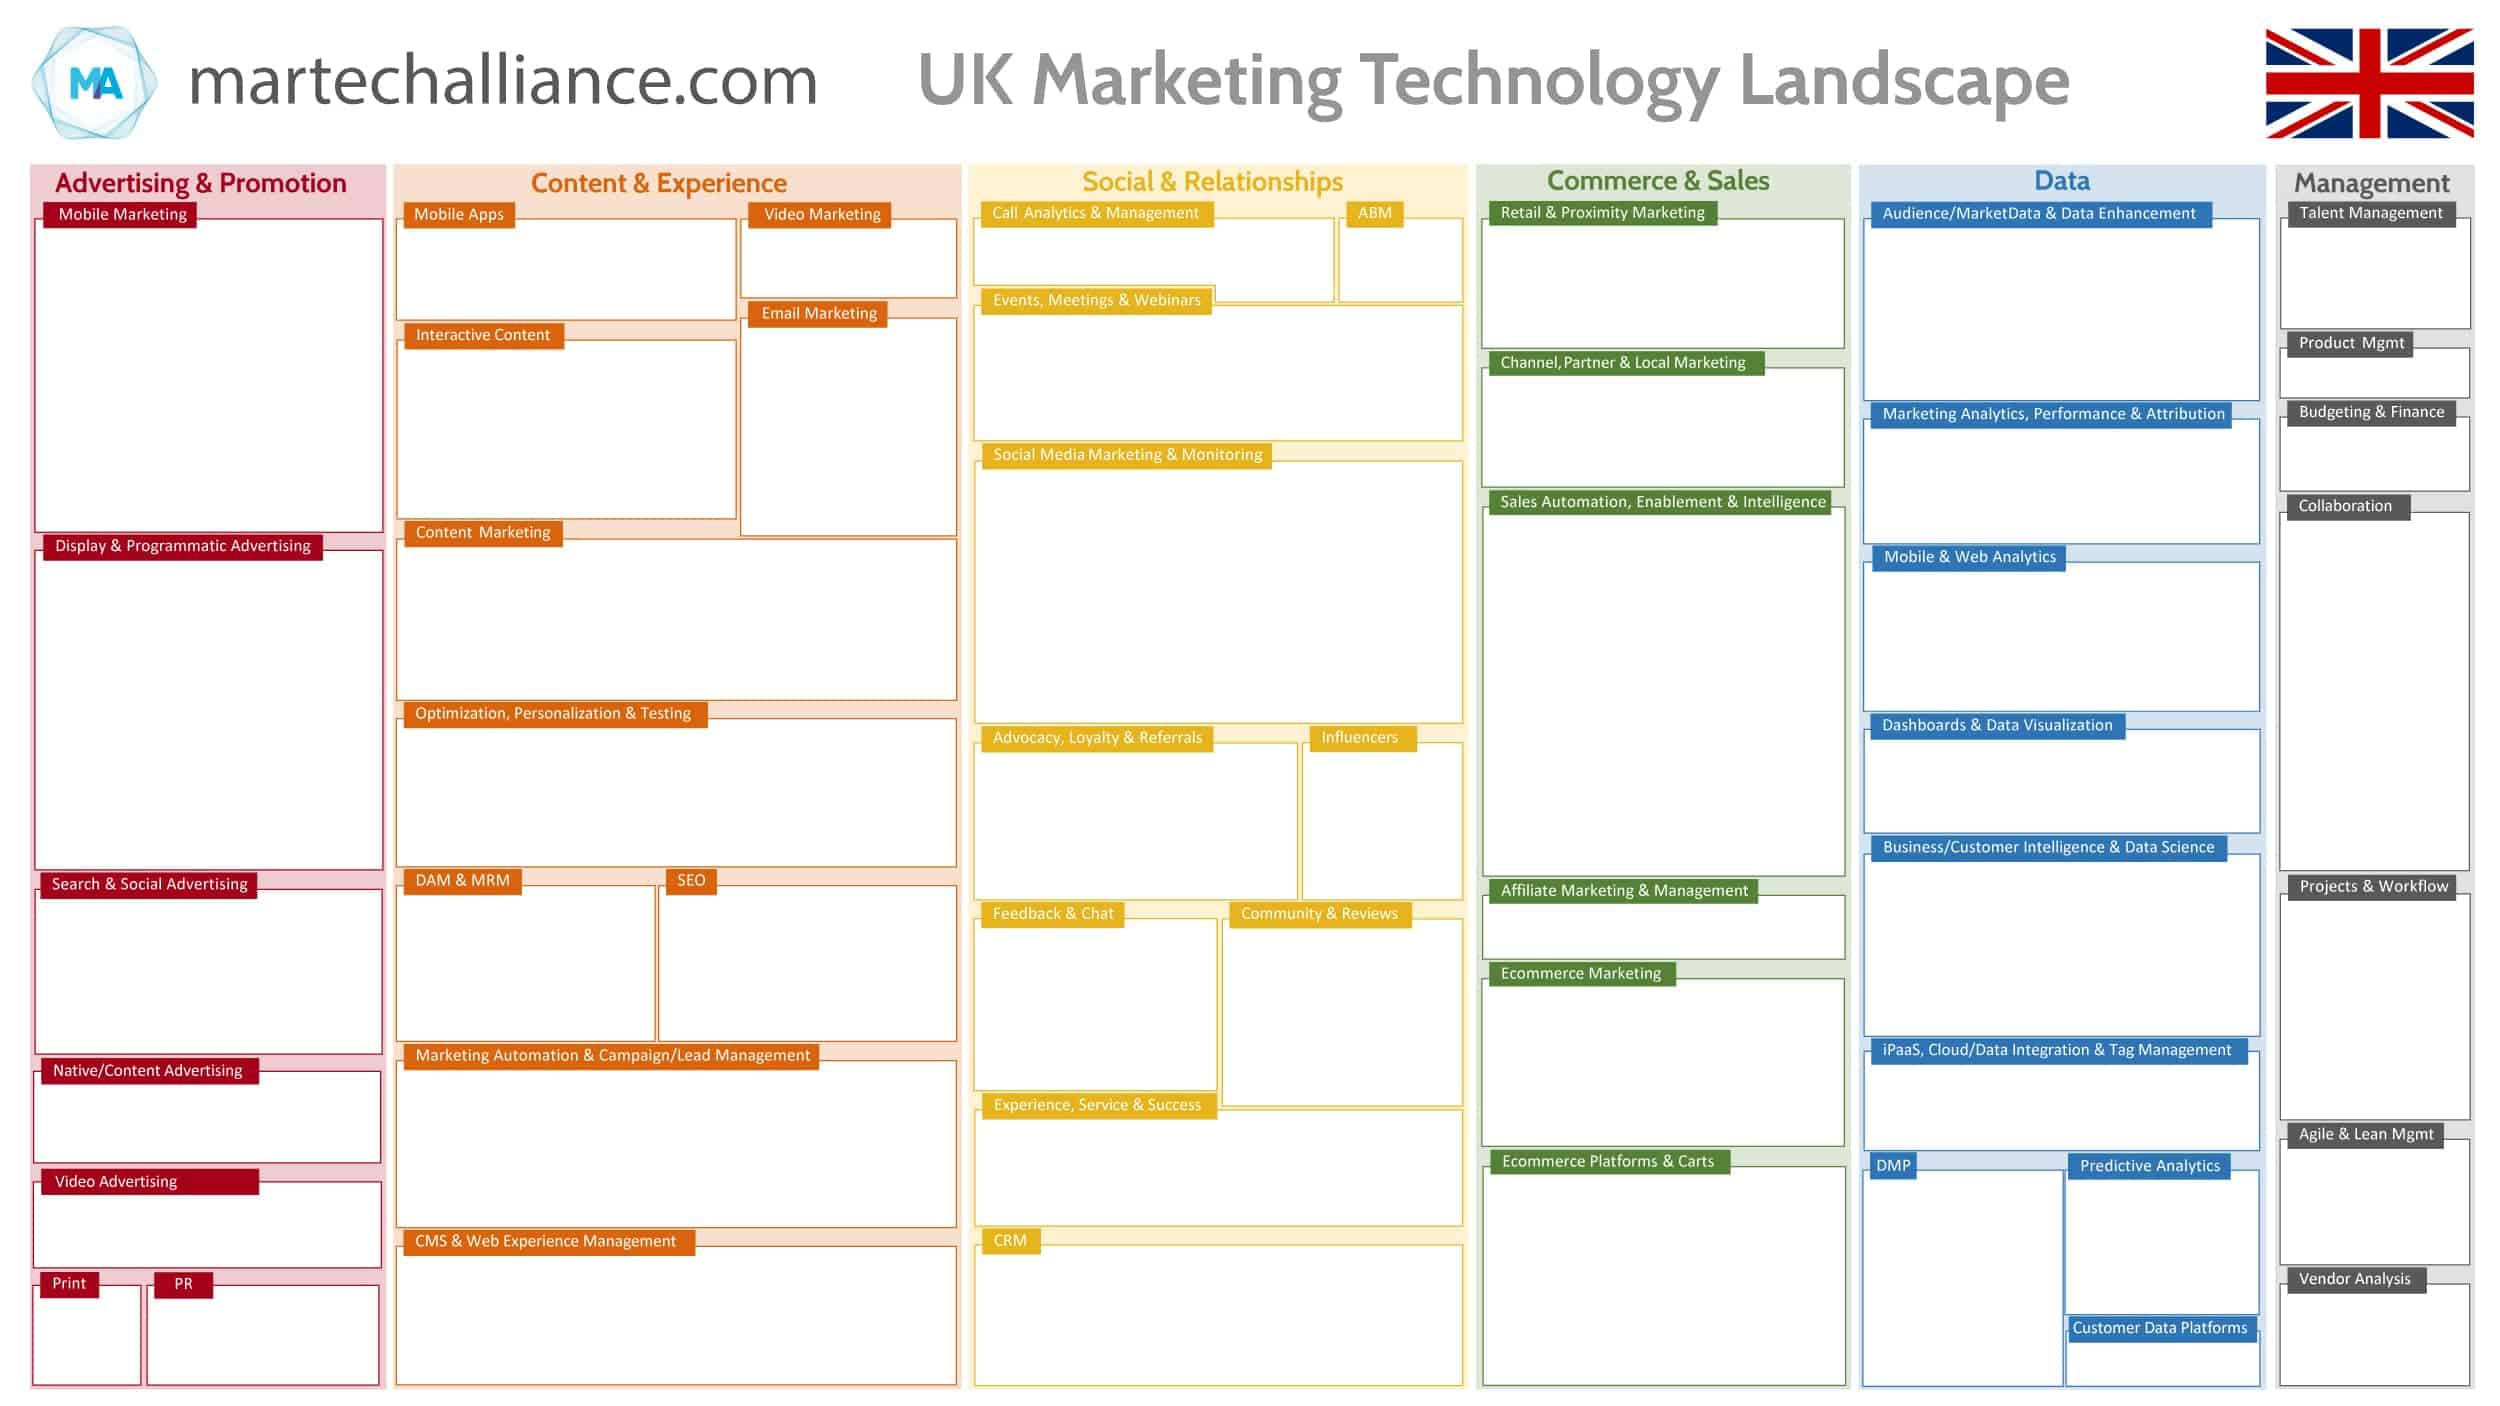 UK-MarTech-Landscape-Empty-MarTech-Alliance (1)